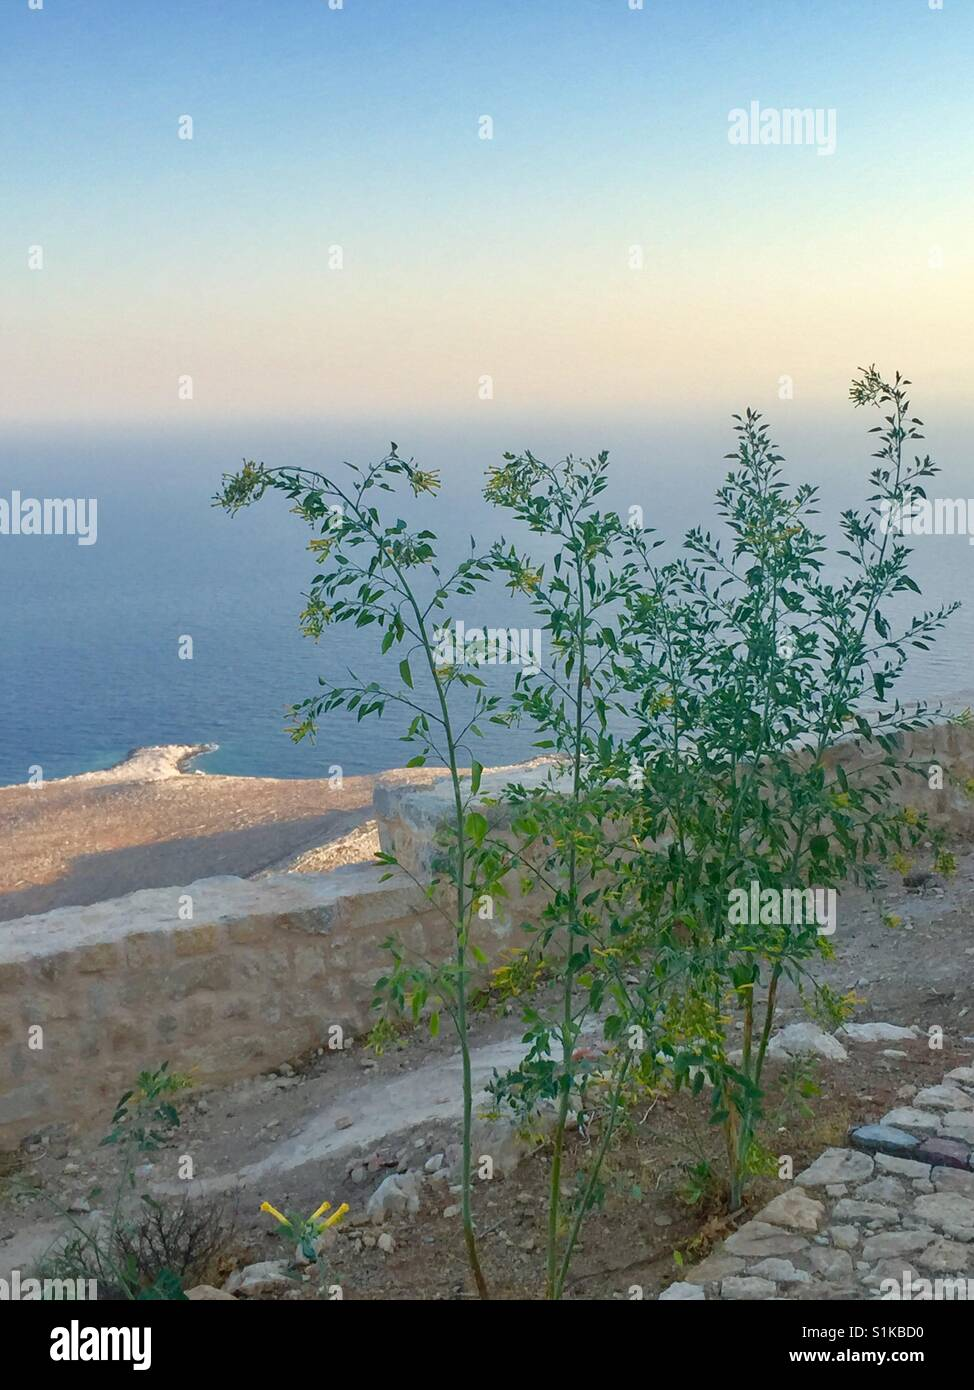 Nicotiana glauca growing in the ruins of Halki Castle, Greece. Evening. - Stock Image